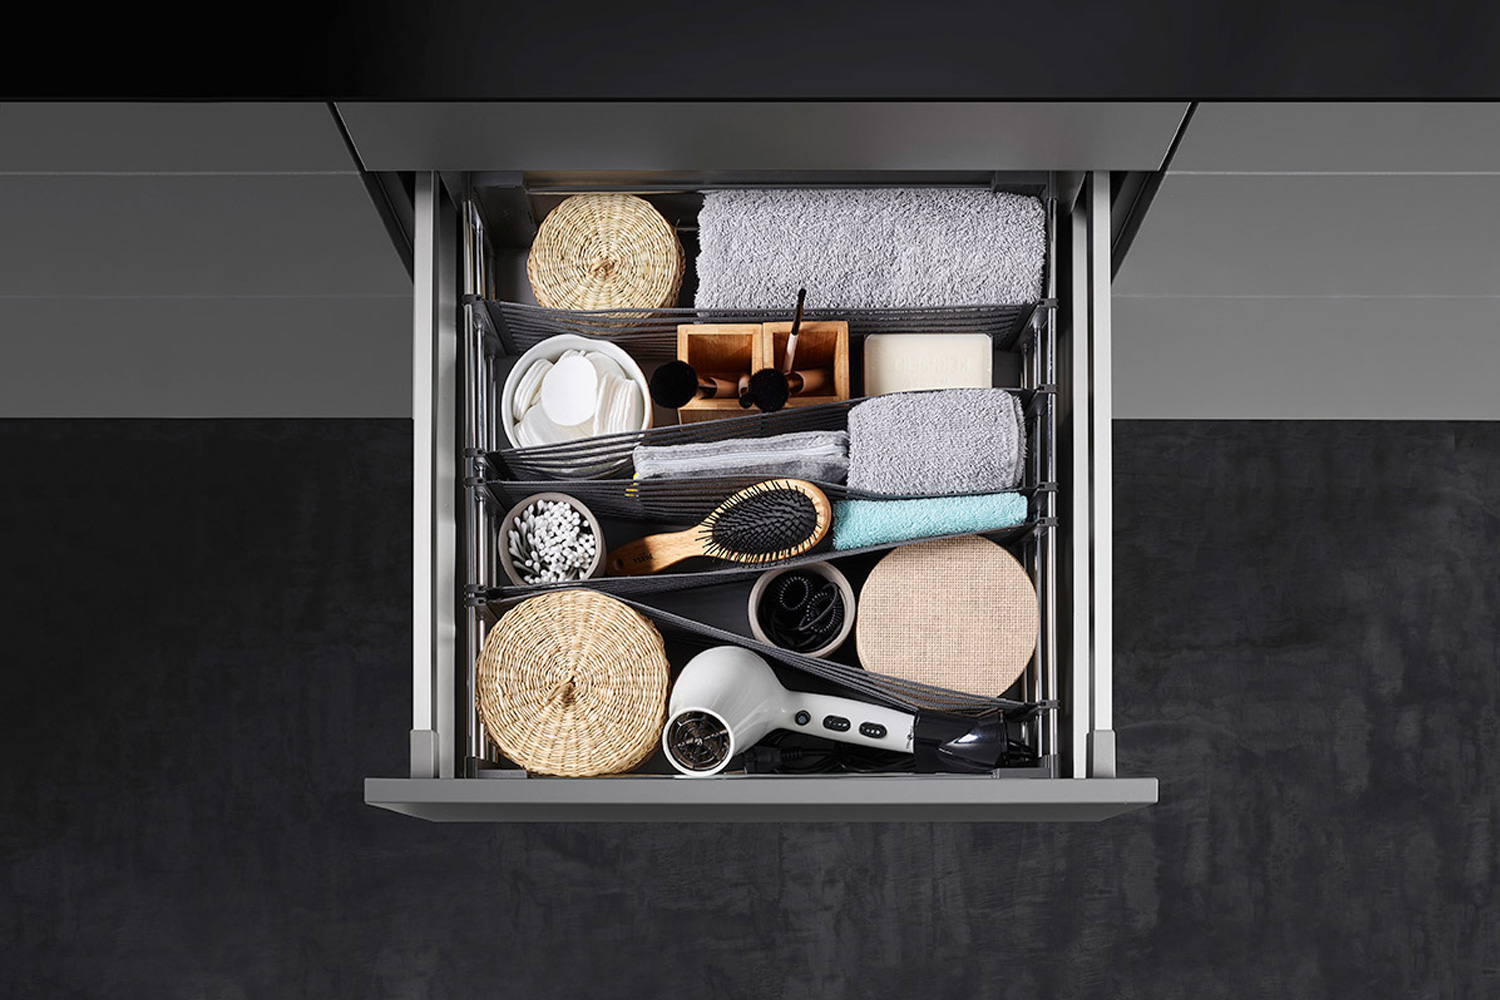 Flexible Drawer Organisation made easy